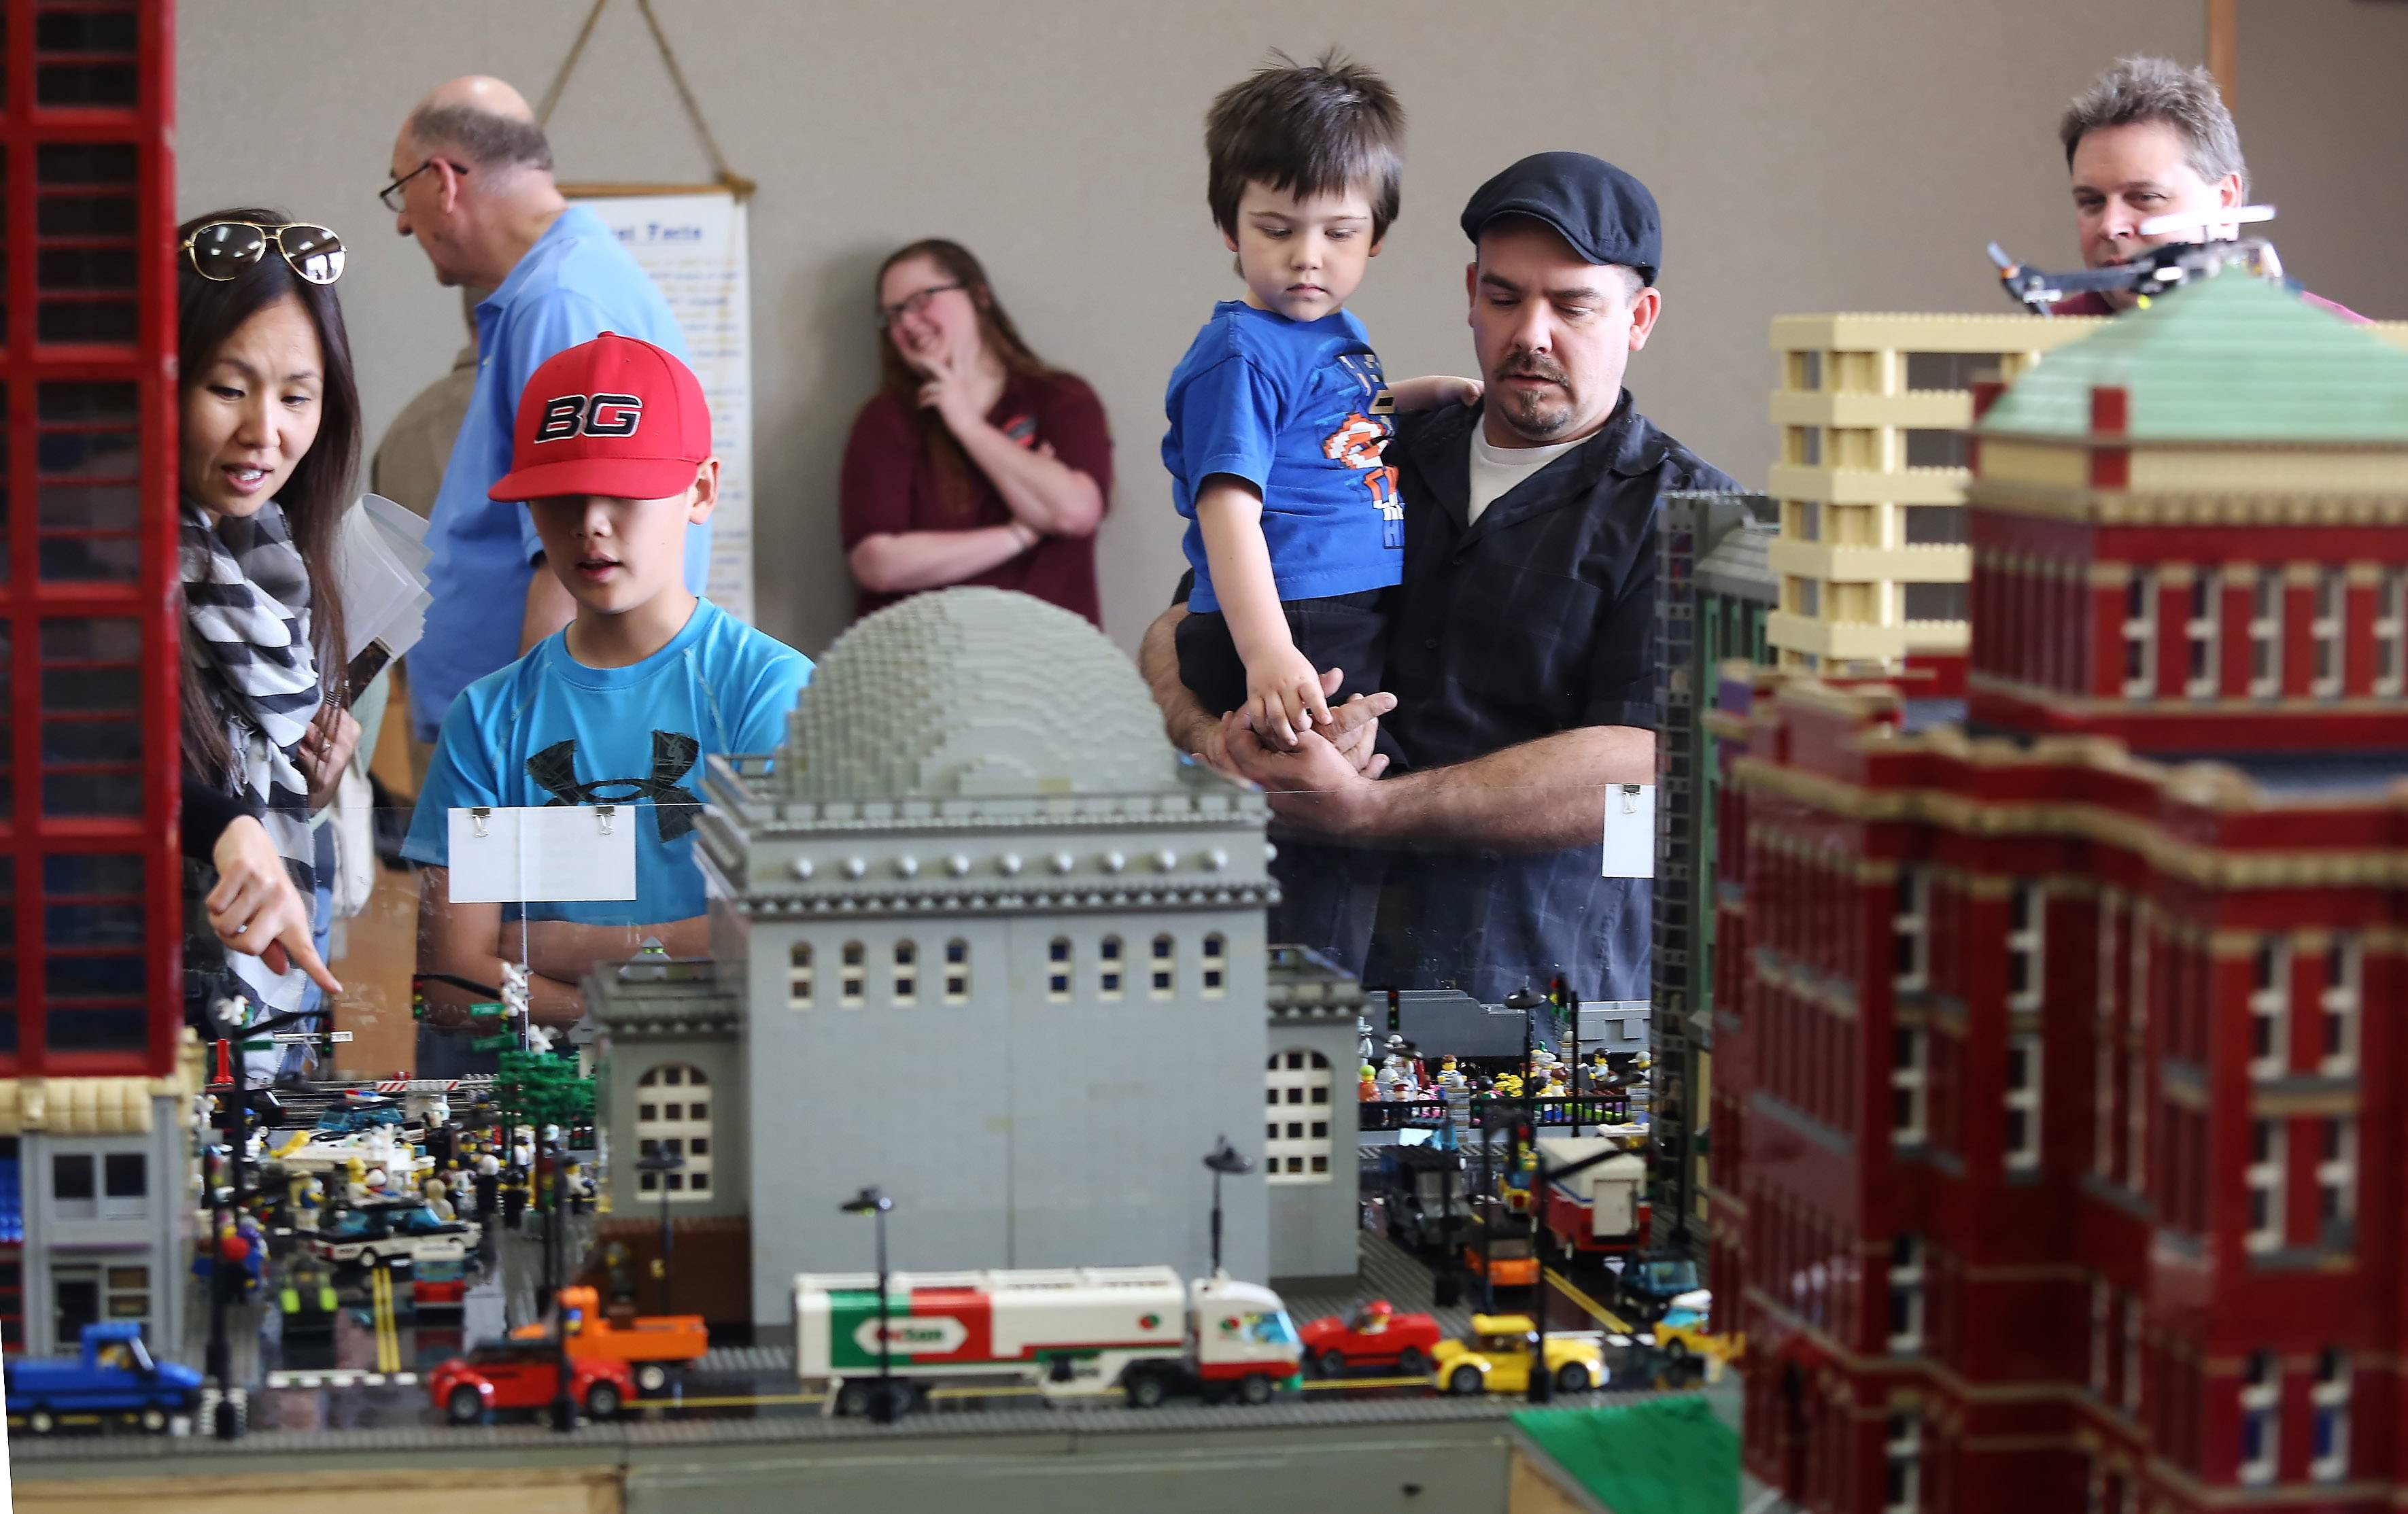 Adam Hyson of Lake in the Hills holds his son, Charlie, 4, as they watch the train at the Northern Illinois Lego Train Club exhibit Sunday at the Ela Area Public Library. Visitors enjoyed imaginative scenes and huge city landscapes made in Lego's while trains raced around on their tracks.